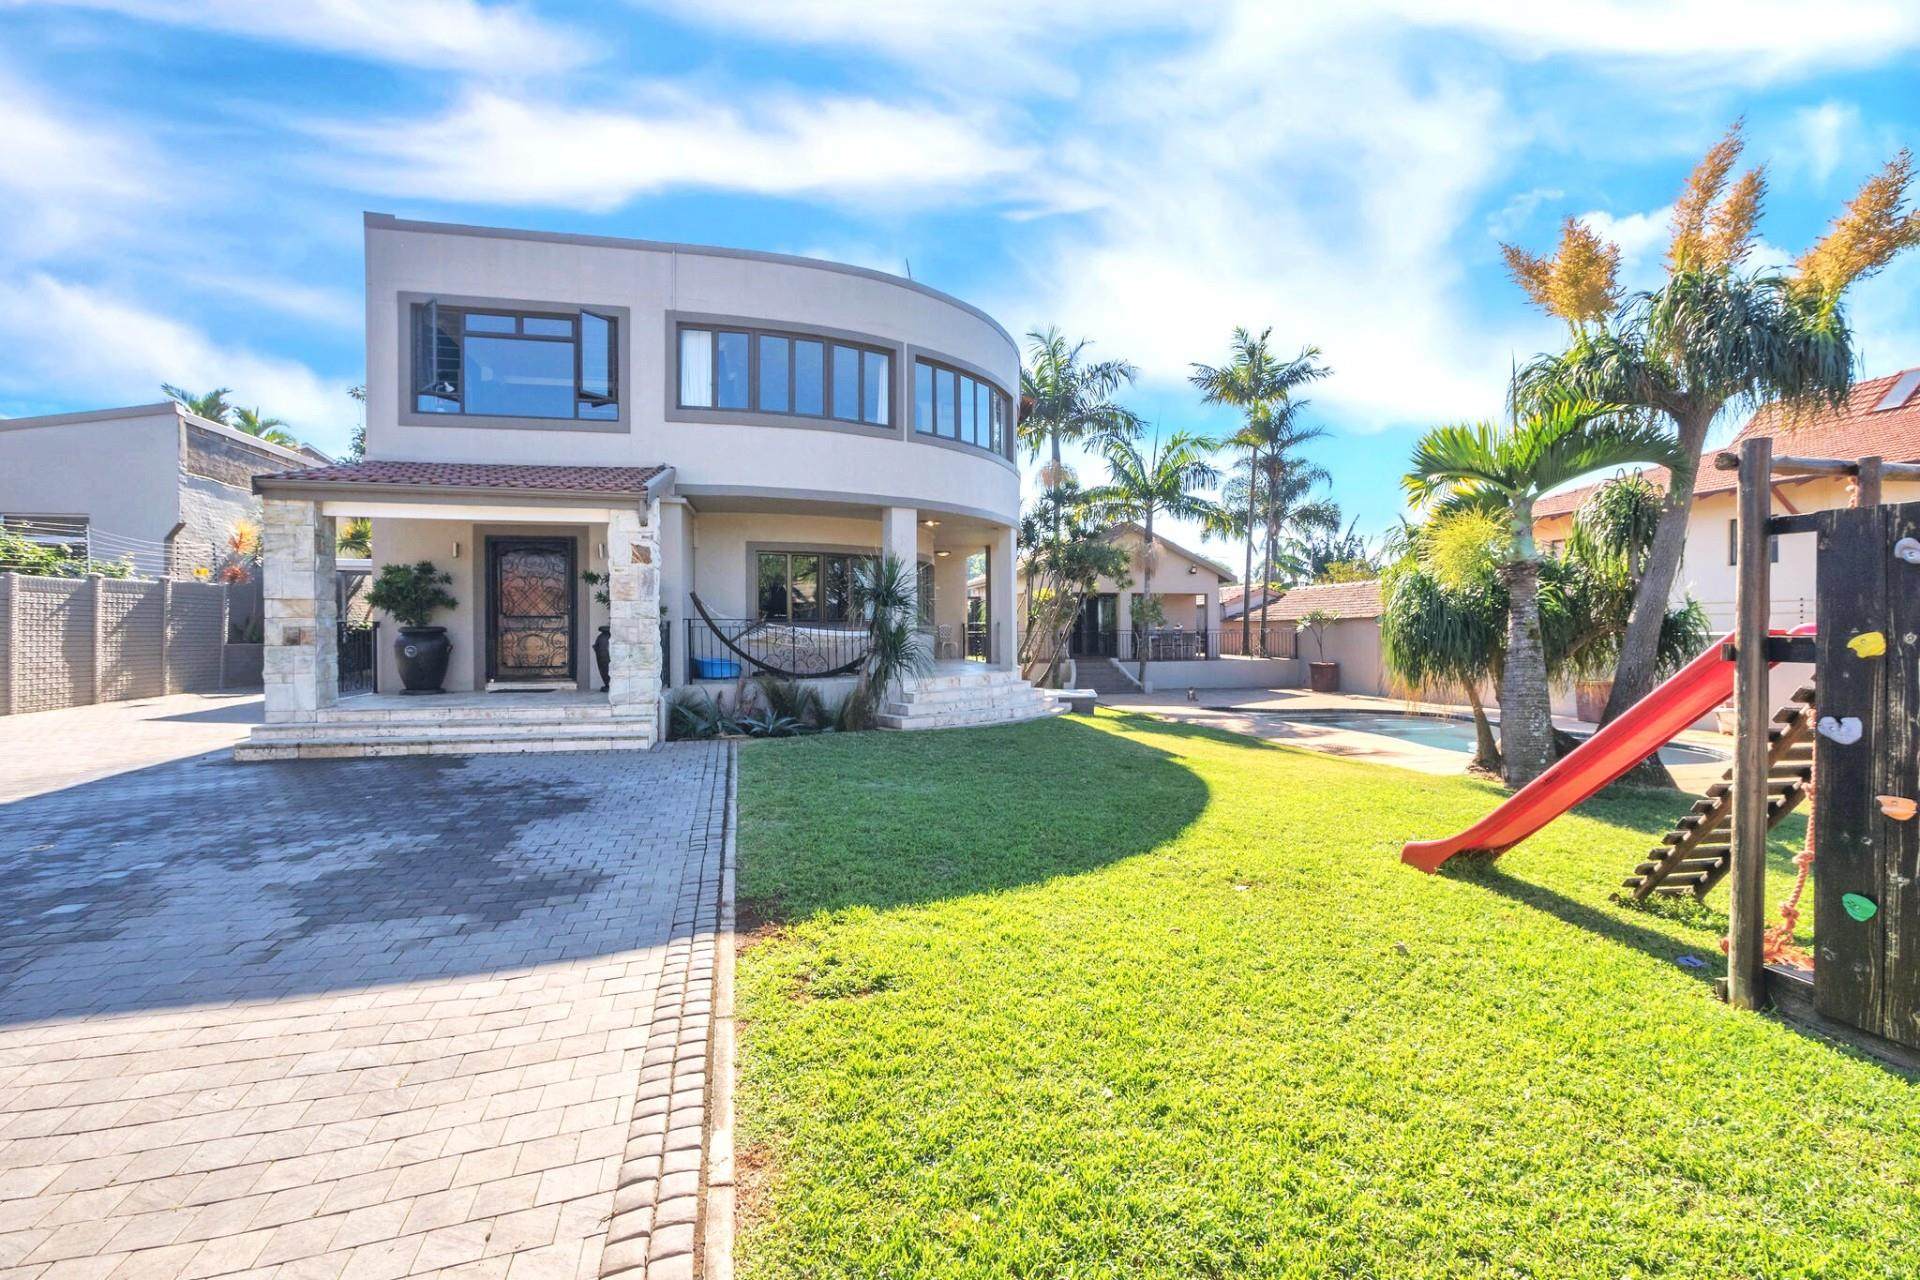 4 Bedroom House For Sale in Durban North   RE/MAX™ of